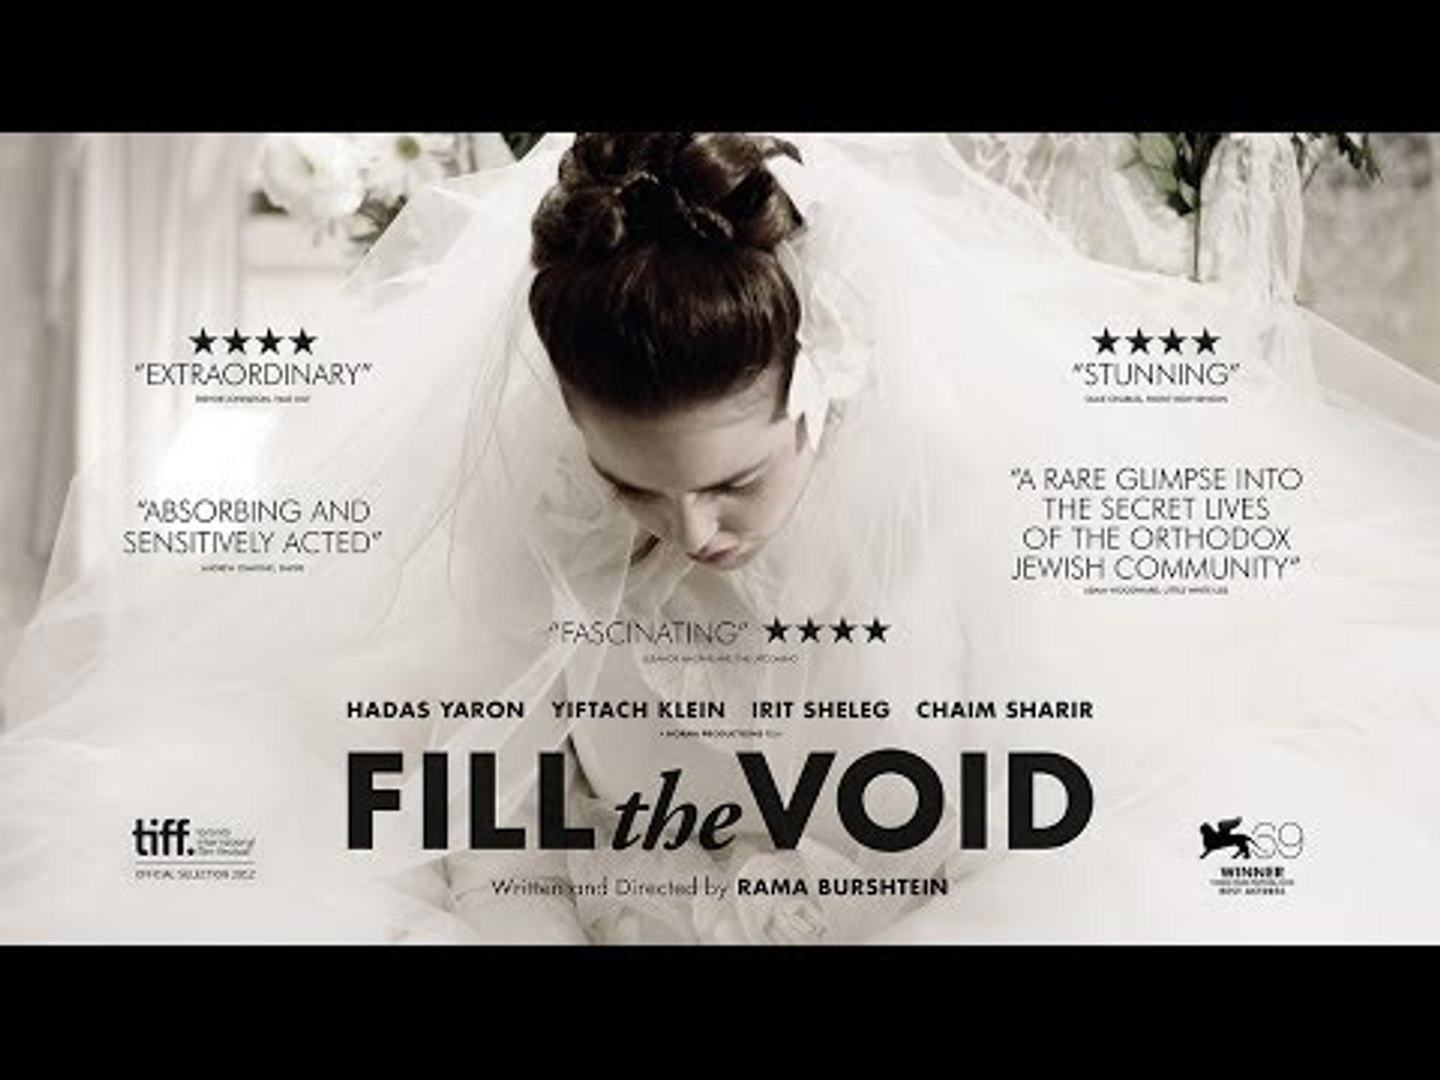 Fill the Void trailer - in cinemas & on demand from 13 December 2013